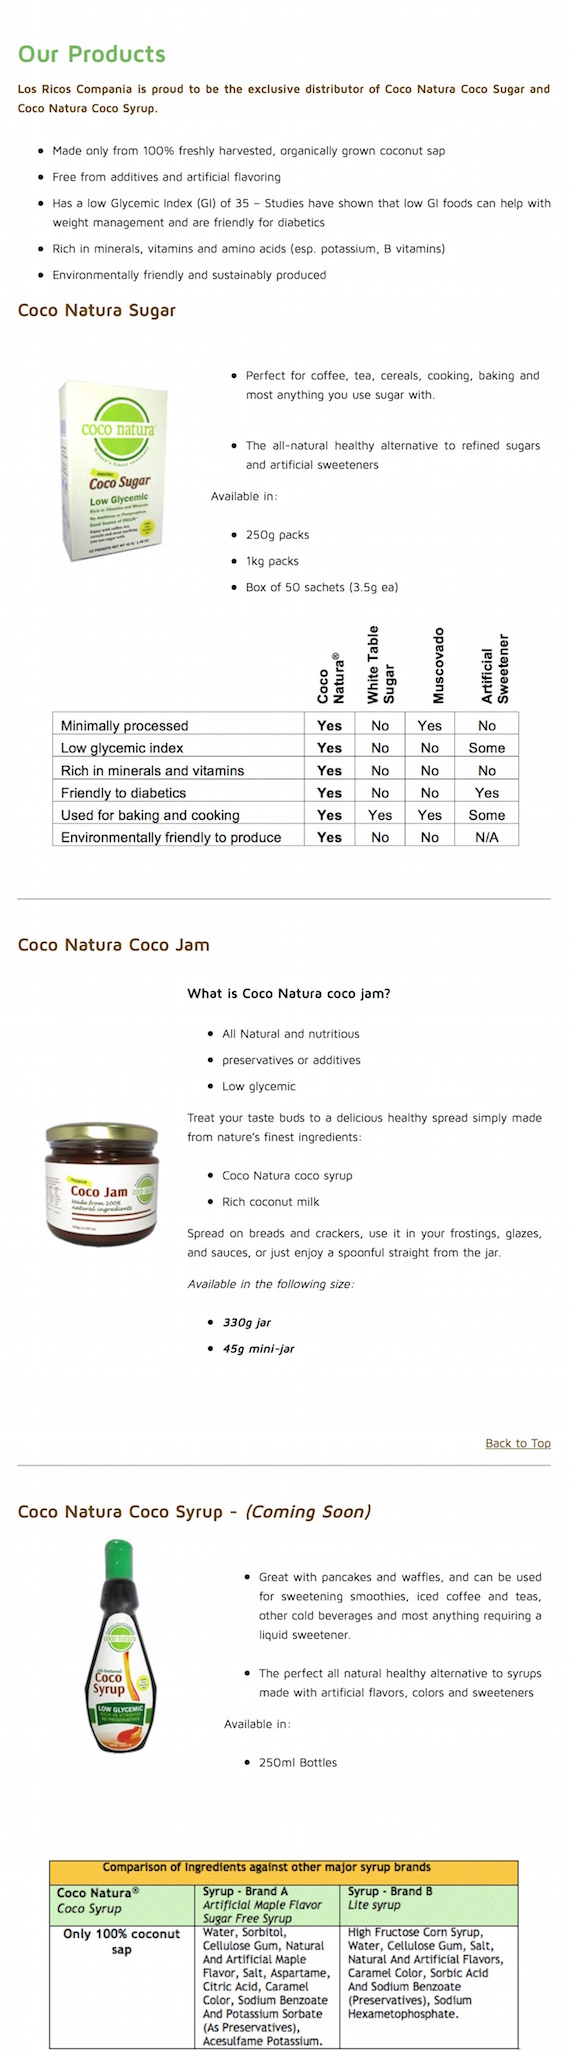 coco natura products